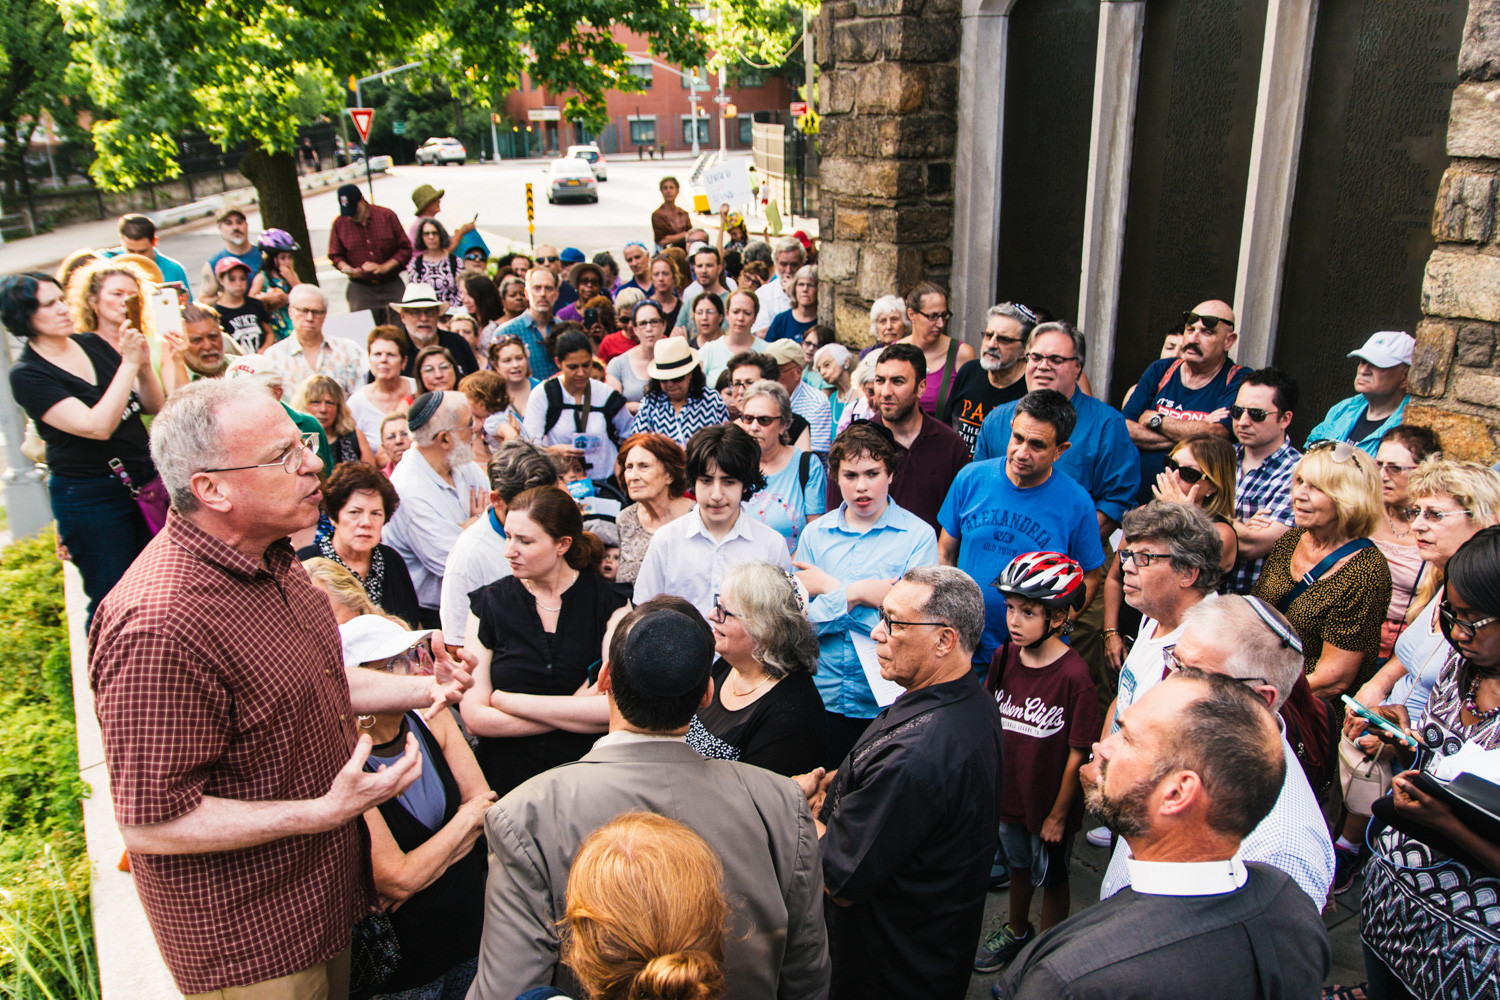 Assemblyman Jeffrey Dinowitz speaks to community members at a peace rally following the violent clashes in Charlottesville, VA.